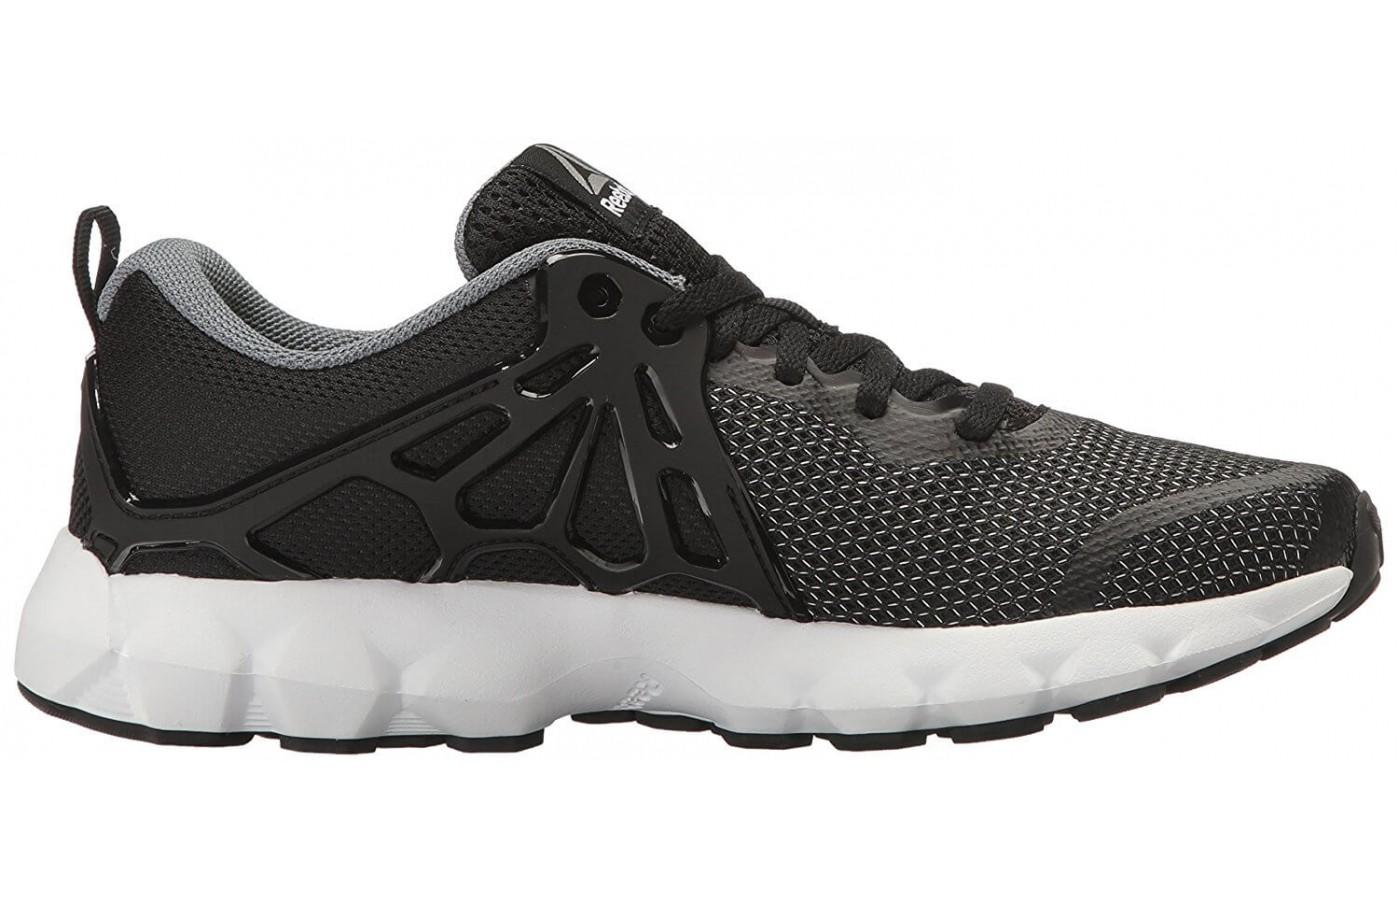 the Reebok Hexaffect Run 5.0 has a standard drop